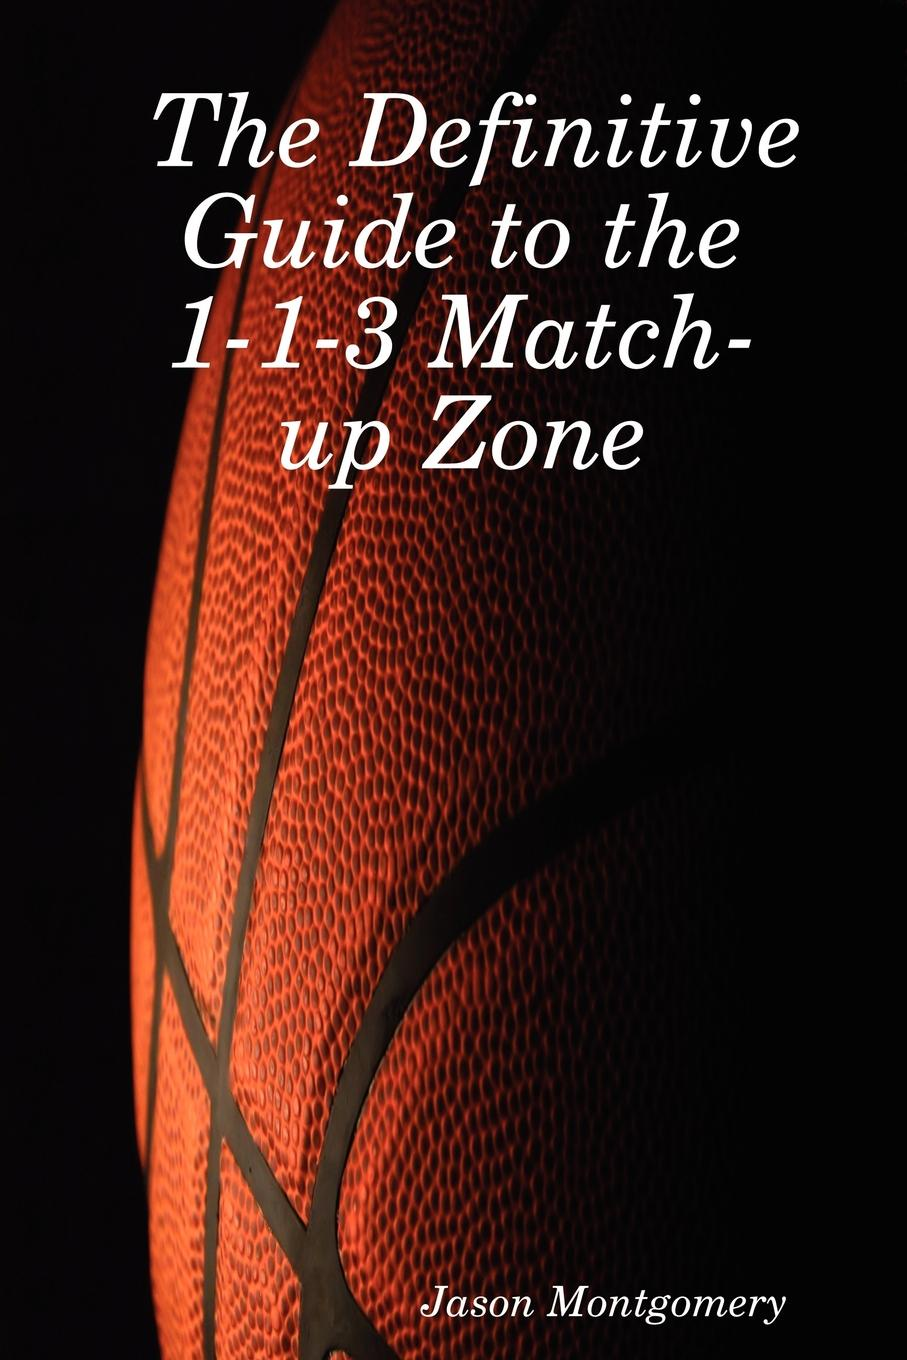 лучшая цена Jason Montgomery The Definitive Guide to the 1-1-3 Match-Up Zone